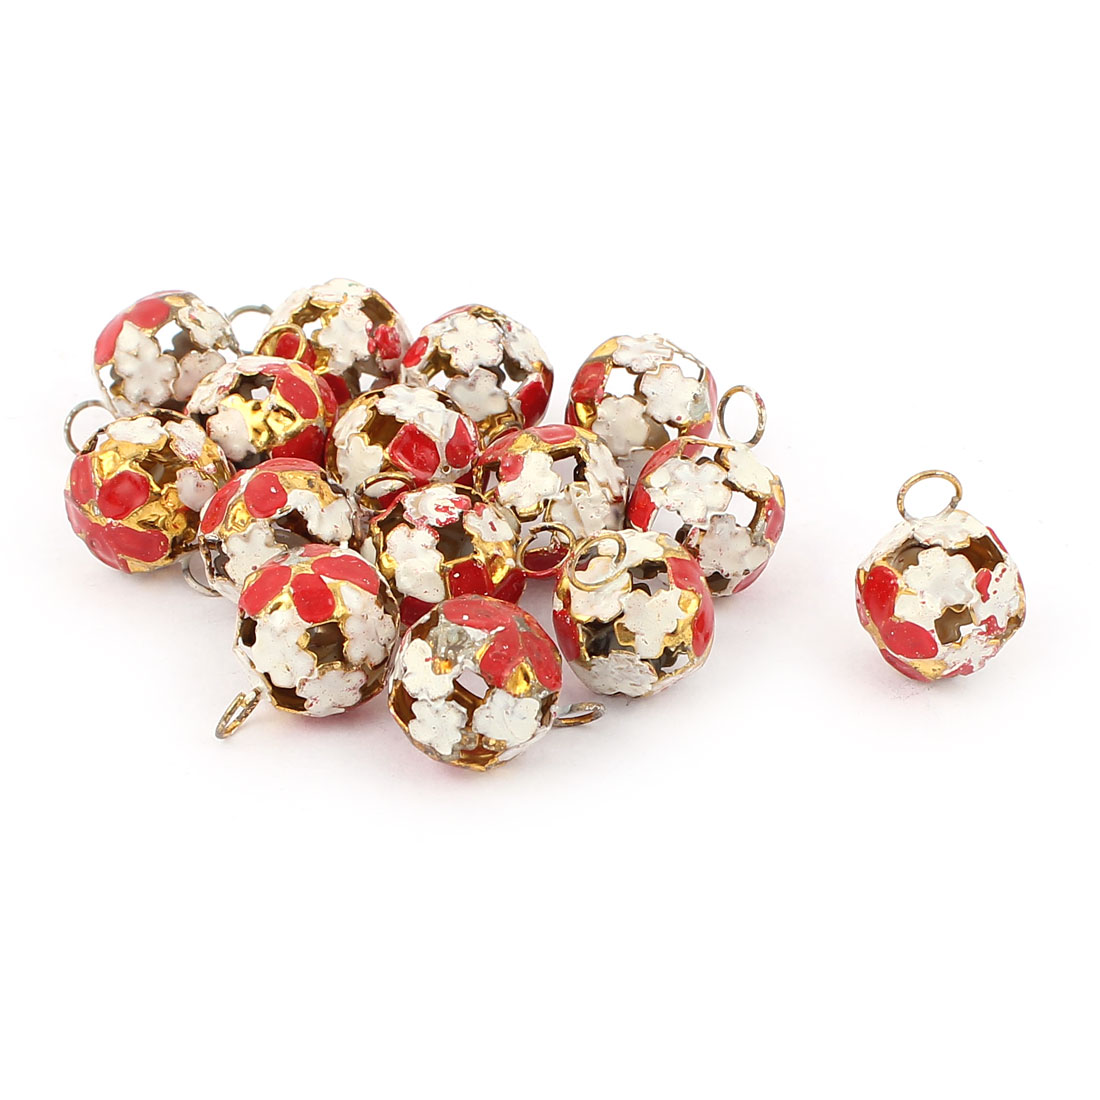 Metal Hollow Out Round Christmas Jingle Bells 0.24 Inch Red 15pcs